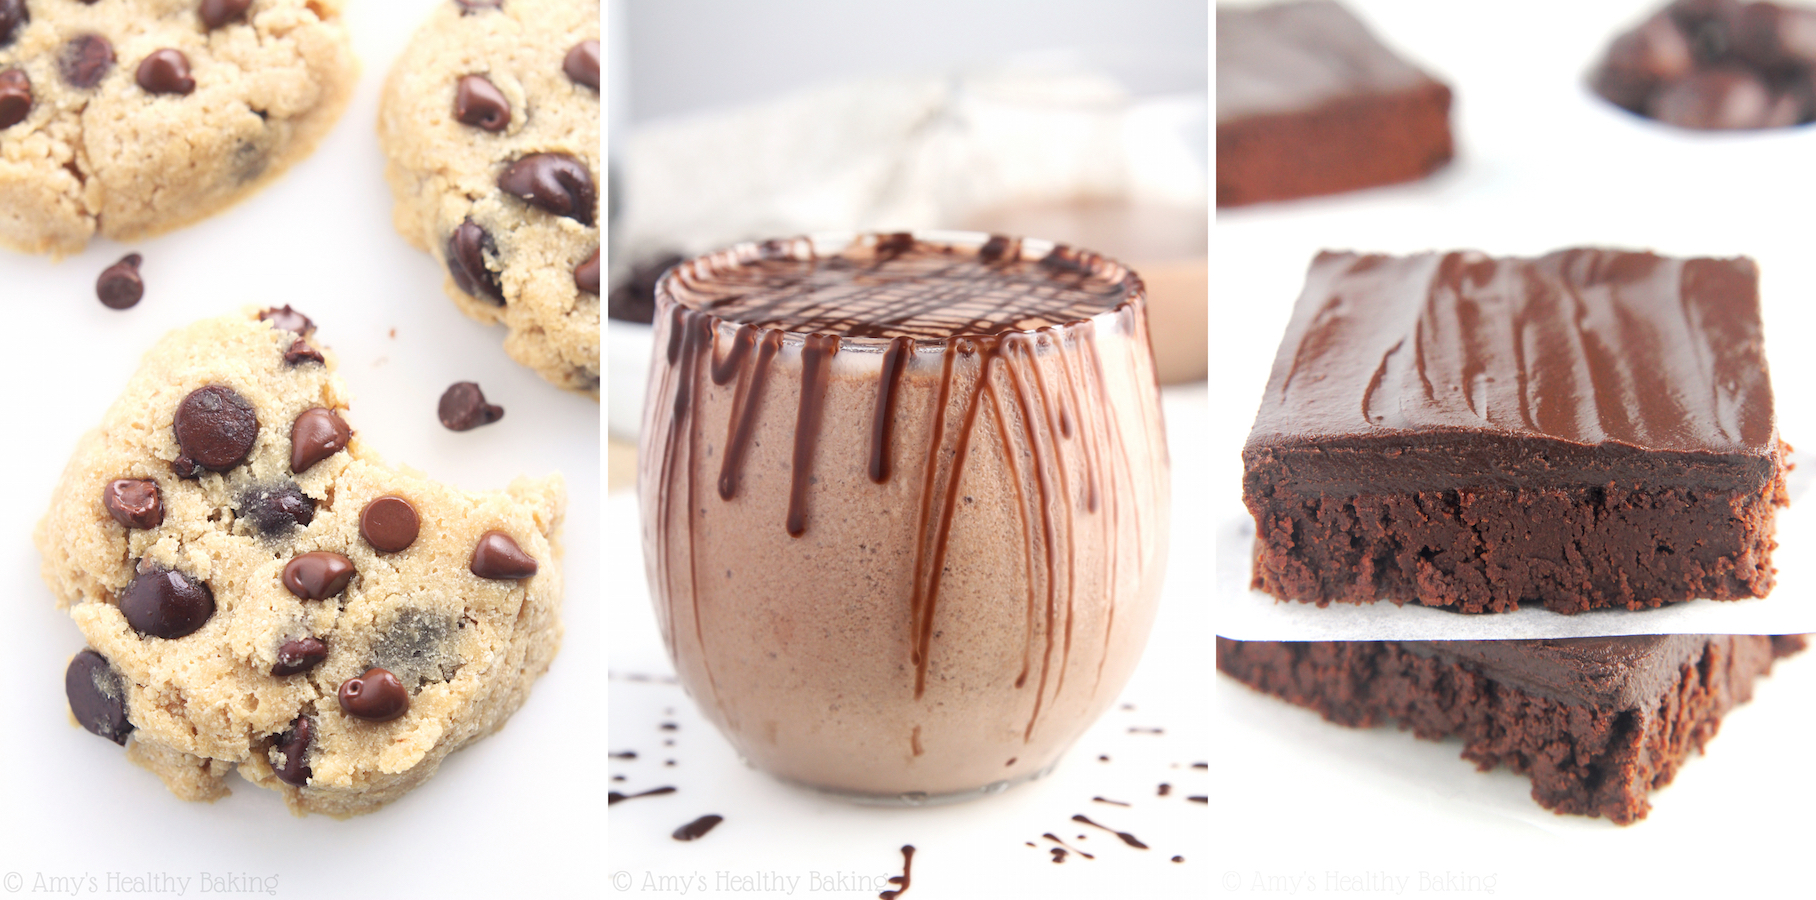 Clean-Eating Chocolate Desserts by Amy's Healthy Baking!